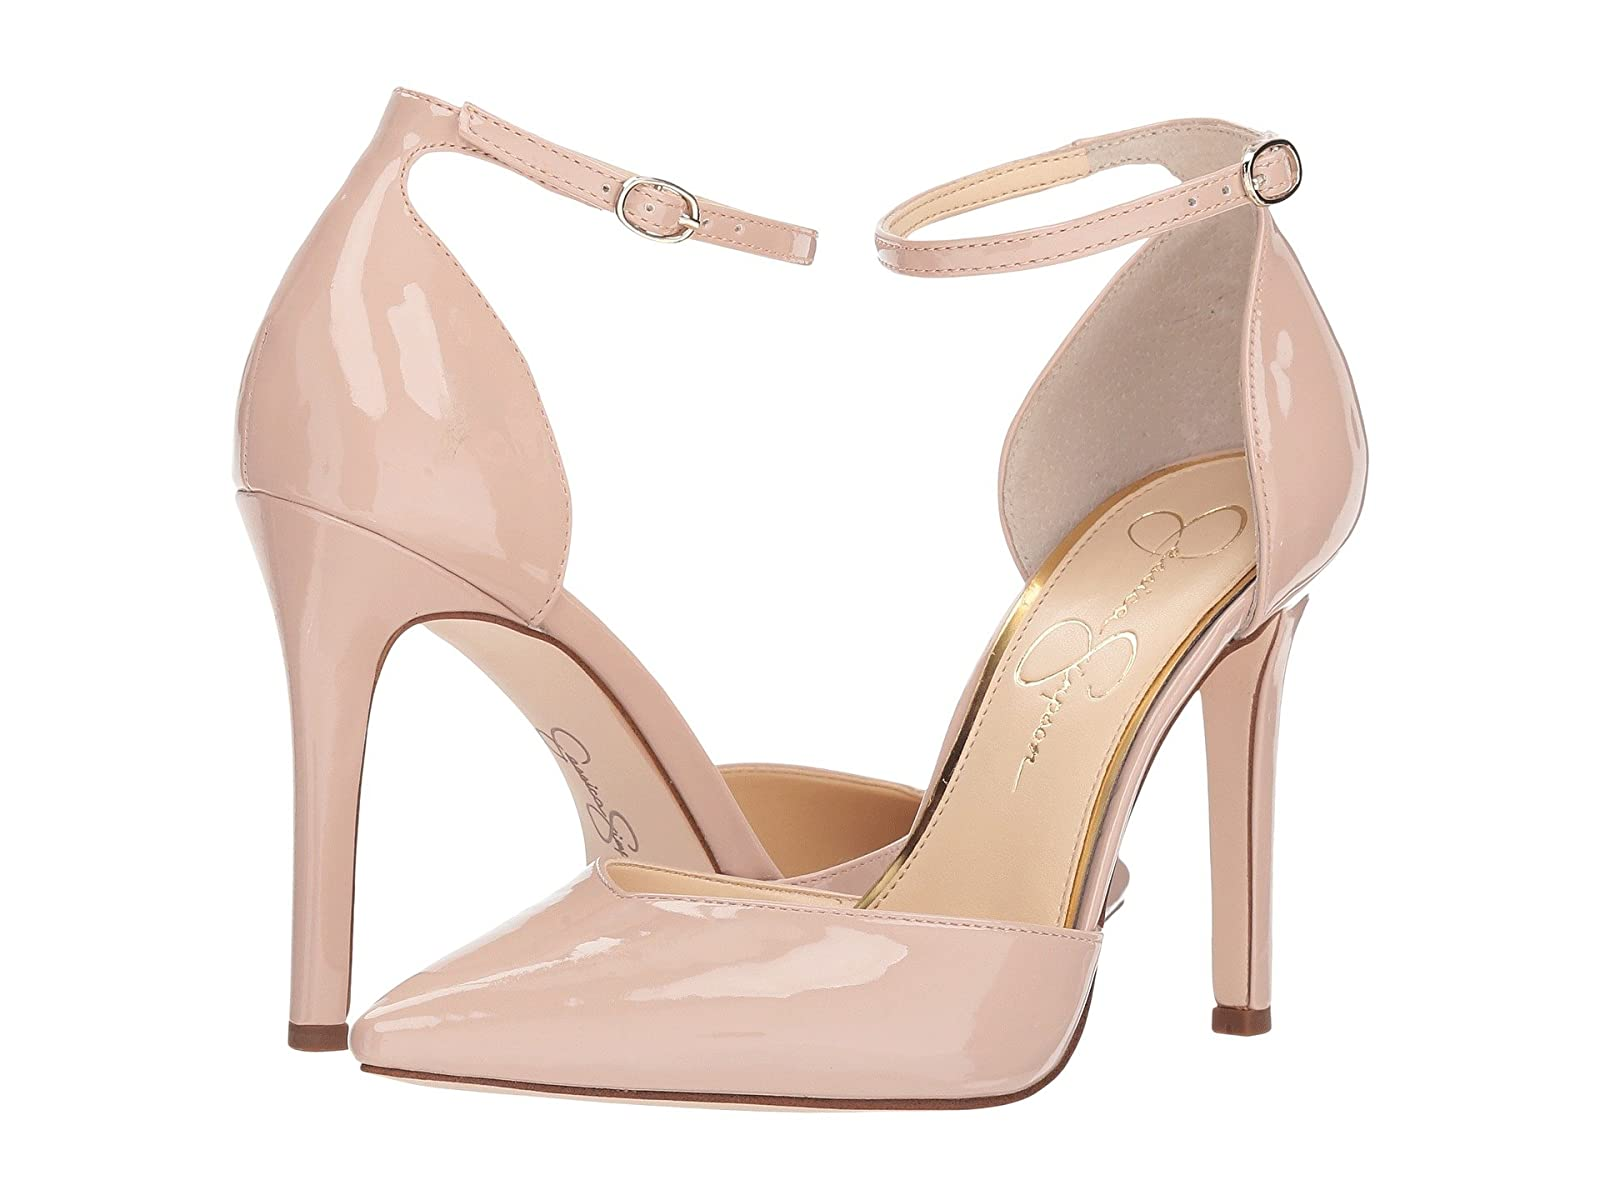 Jessica Simpson CirrusCheap and distinctive eye-catching shoes